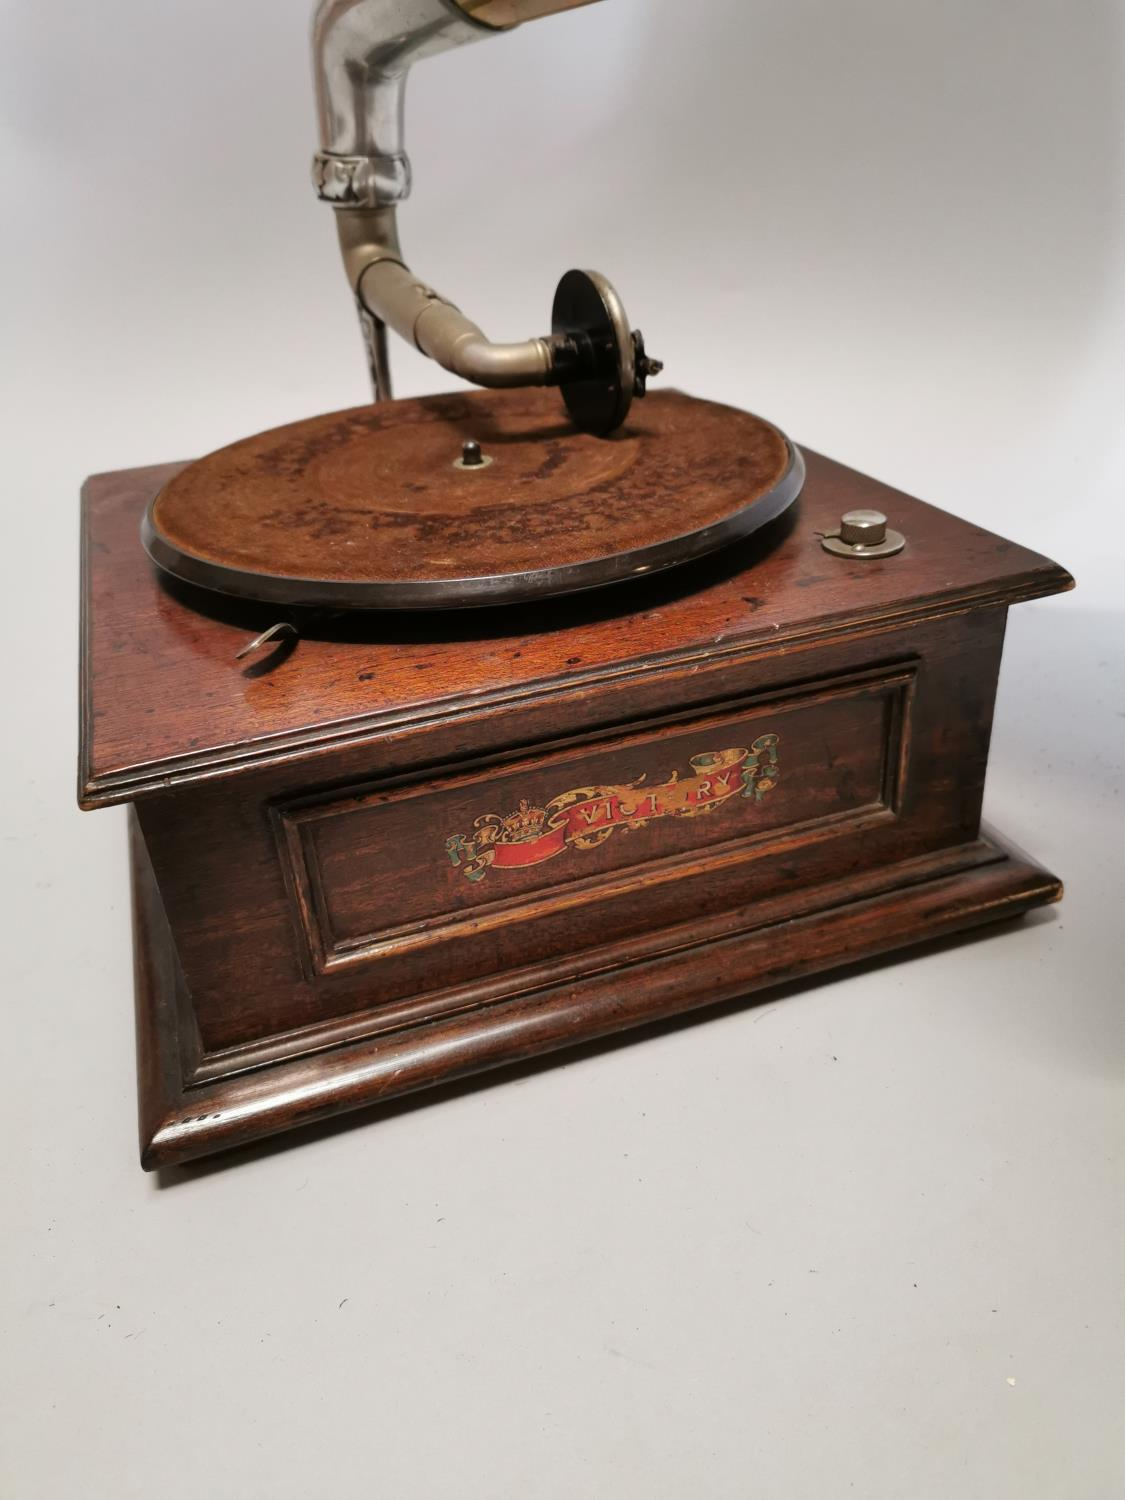 Victory gramophone in oak case with brass horn - Image 4 of 7